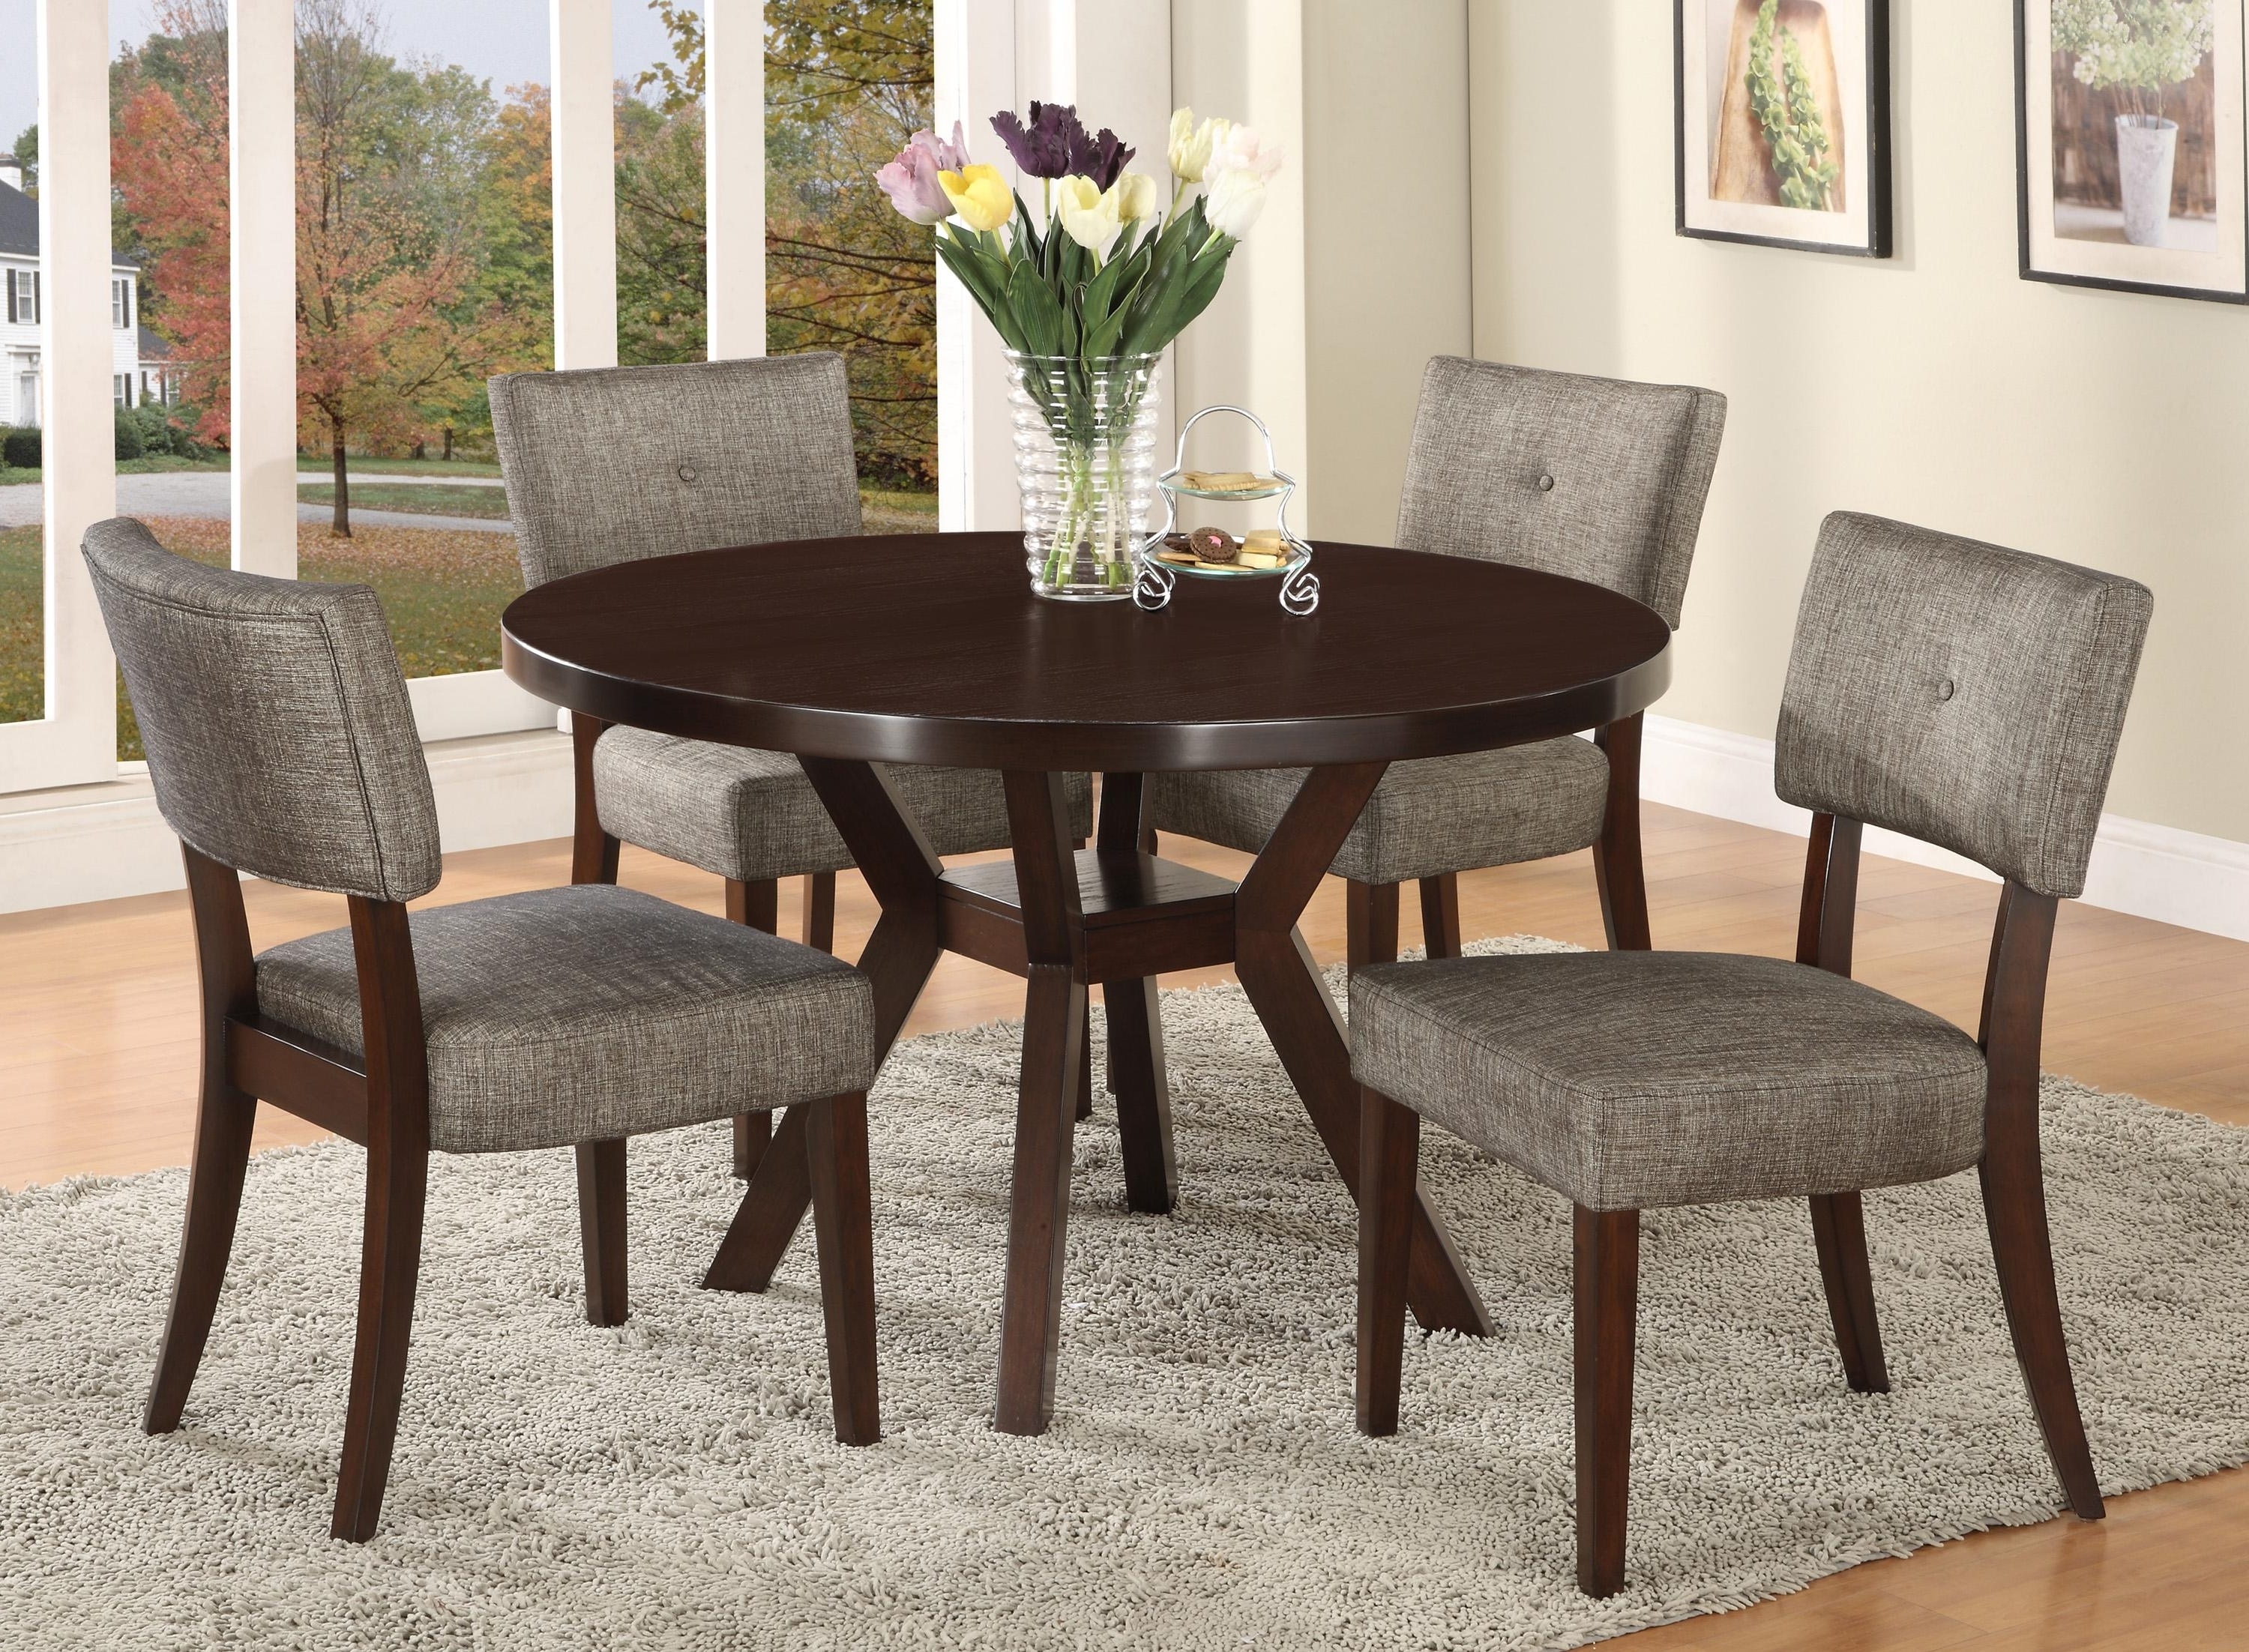 Dunk & Bright pertaining to Dining Sets